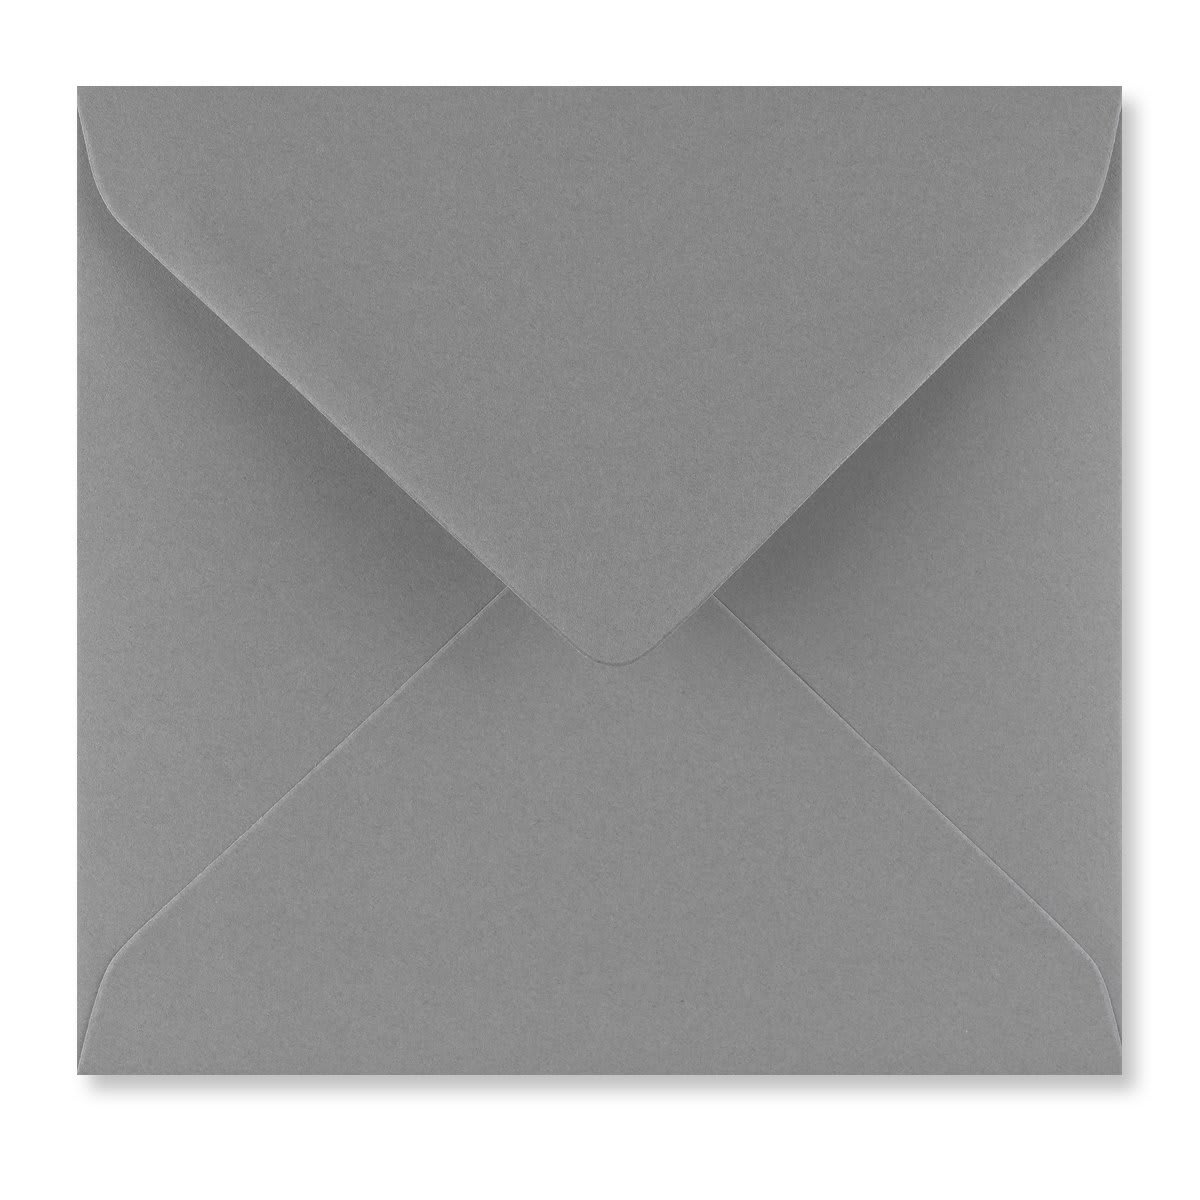 WAGTAIL GREY 155mm SQUARE ENVELOPES 120GSM